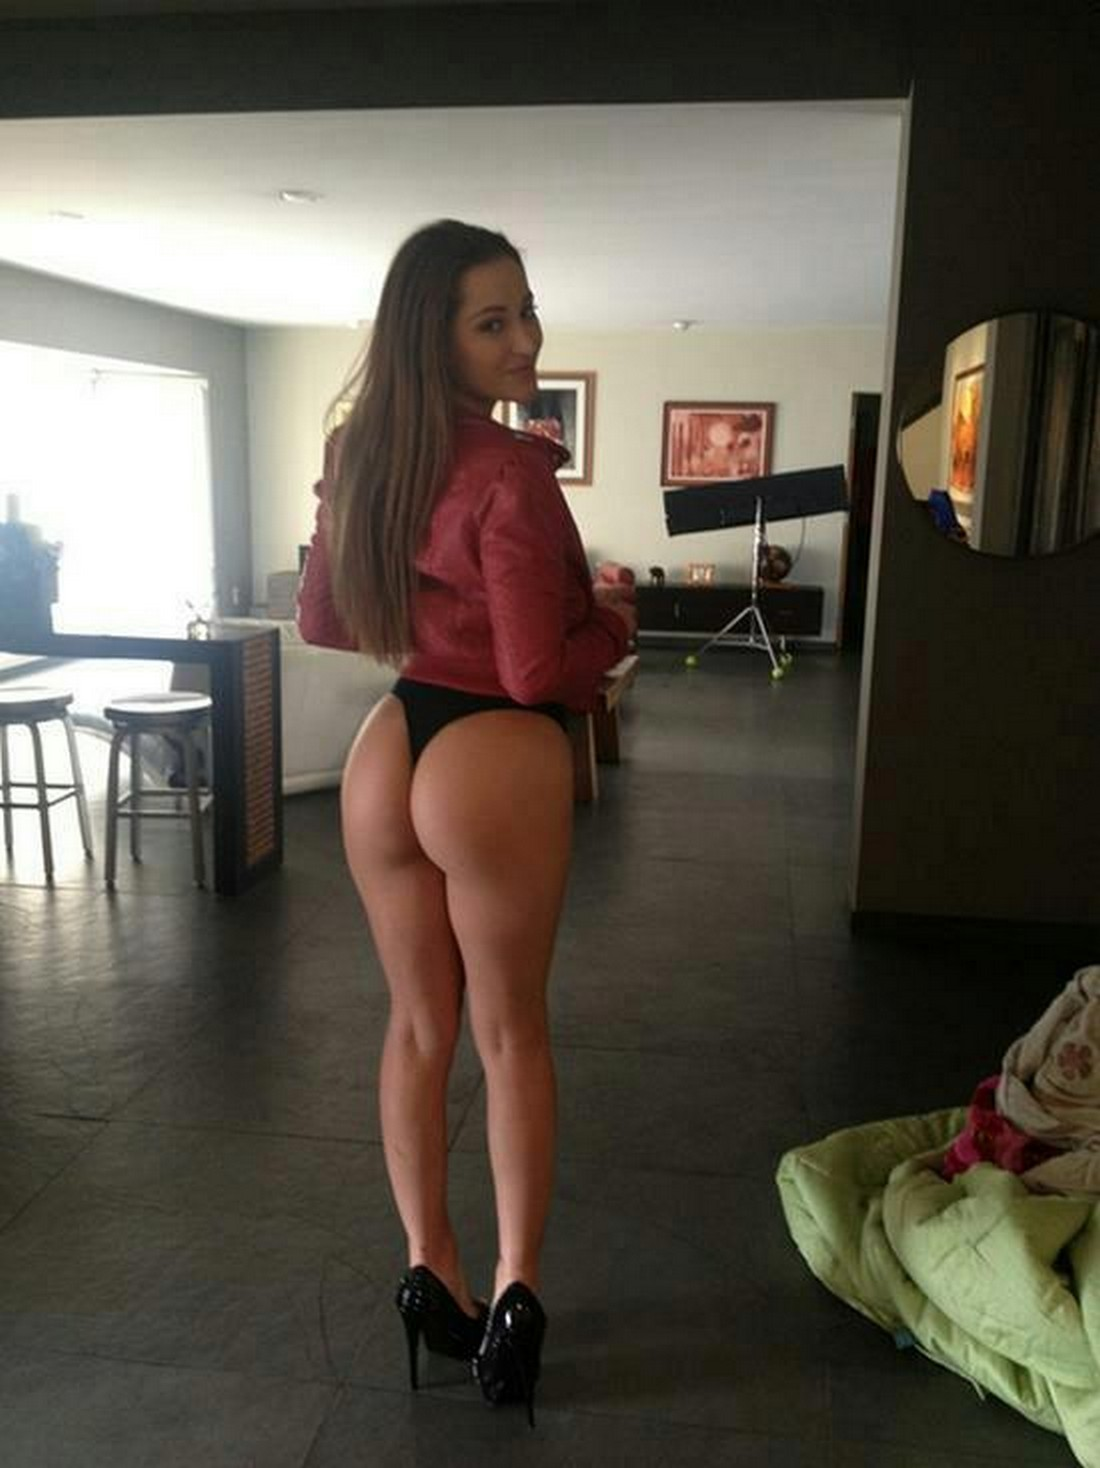 white girl poking booty back at the camera